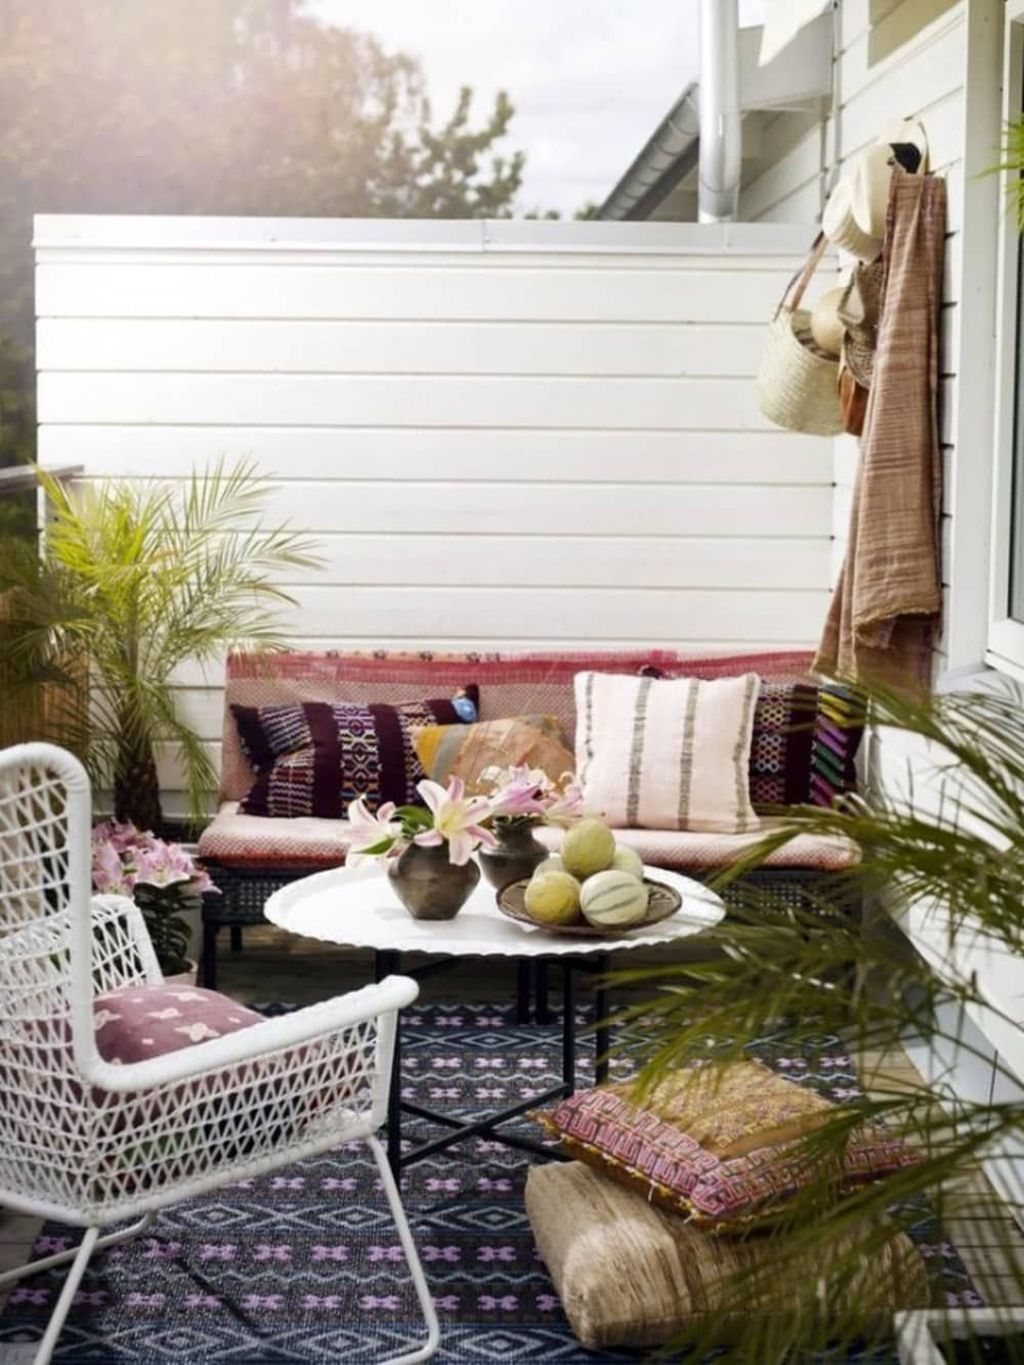 Stunning Rustic Patio Decorating Ideas 03